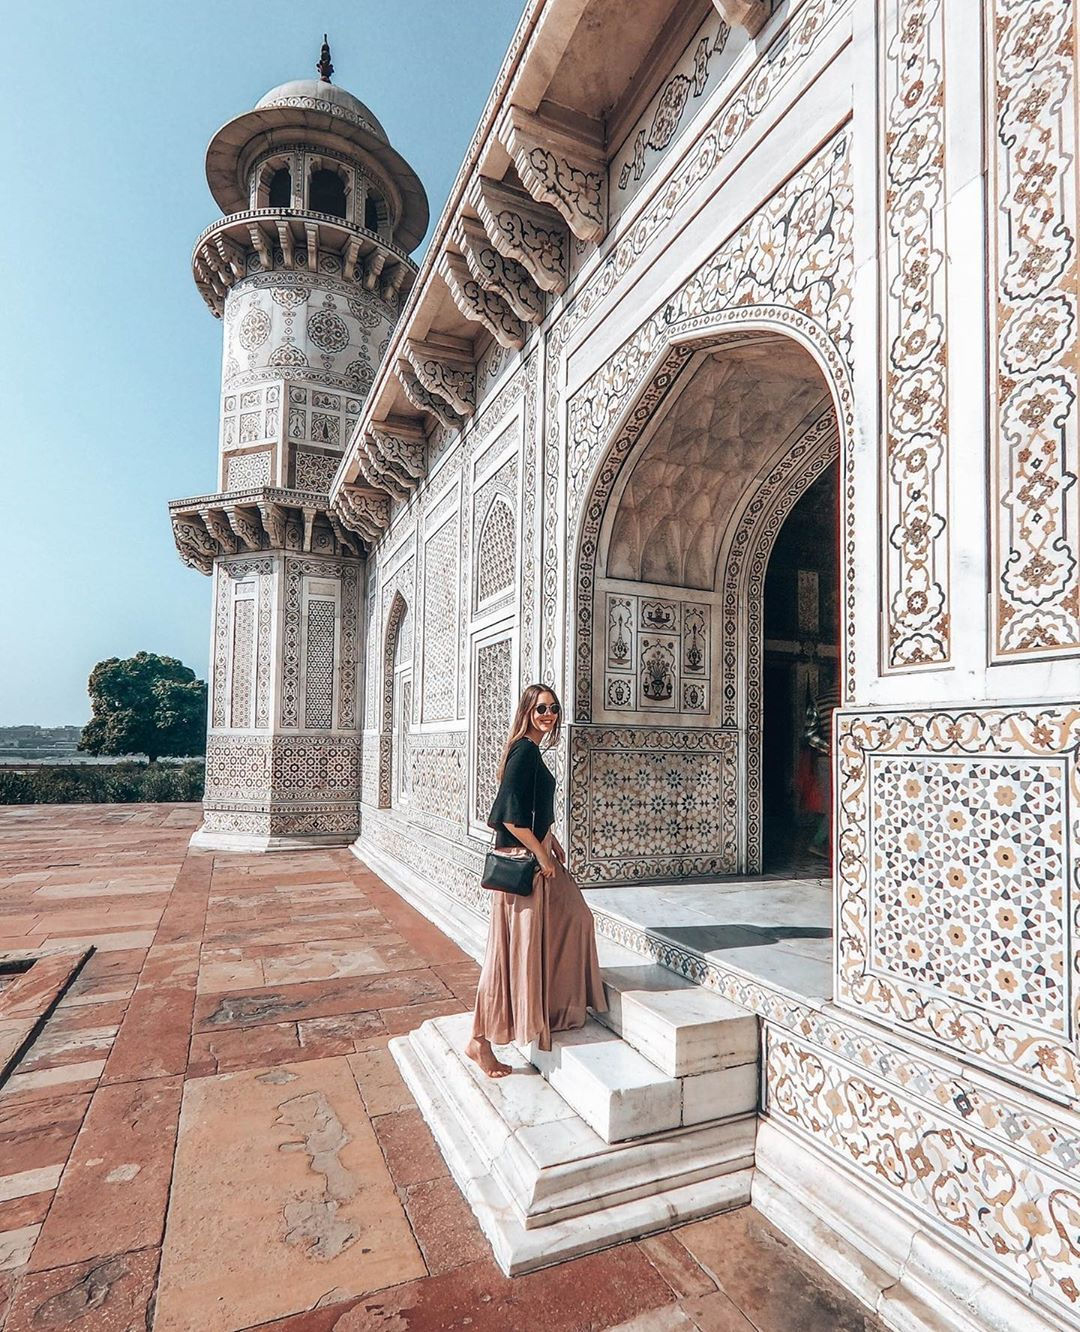 A lot of travellers come to Agra to visit the magical and ...